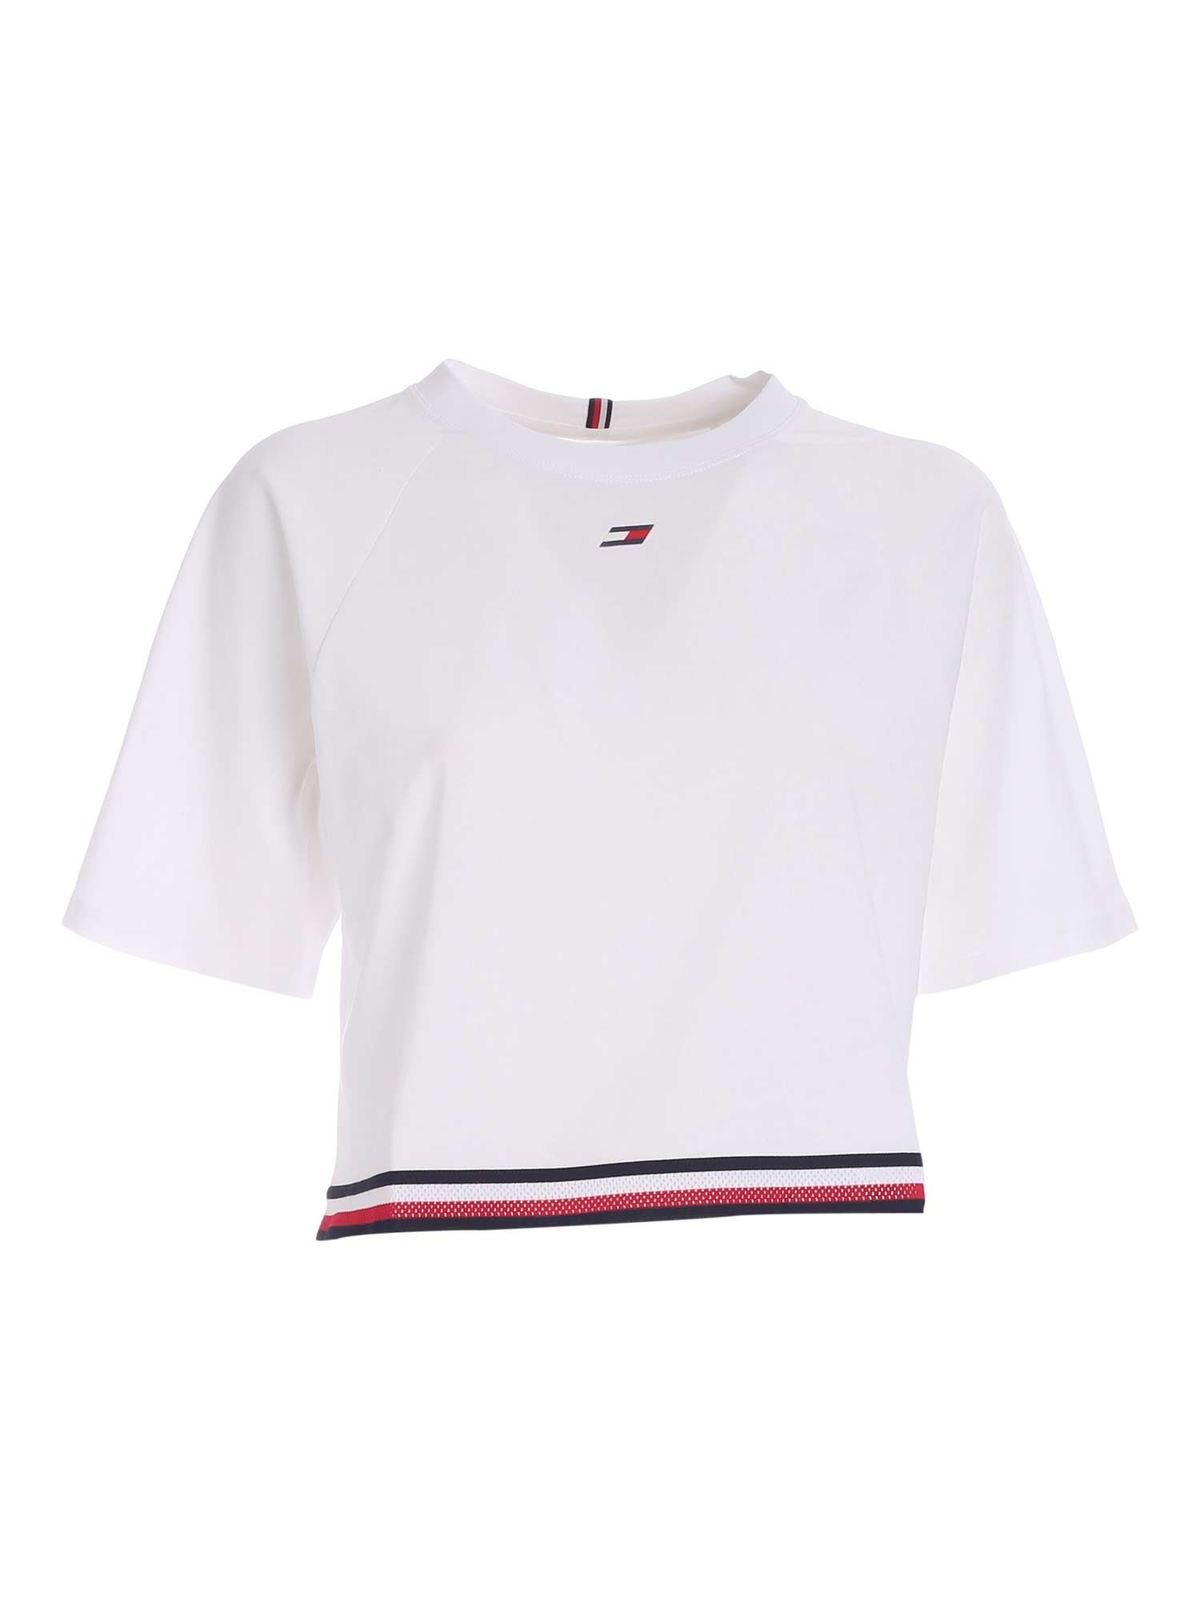 Tommy Hilfiger LOGO SPORTS T-SHIRT IN WHITE